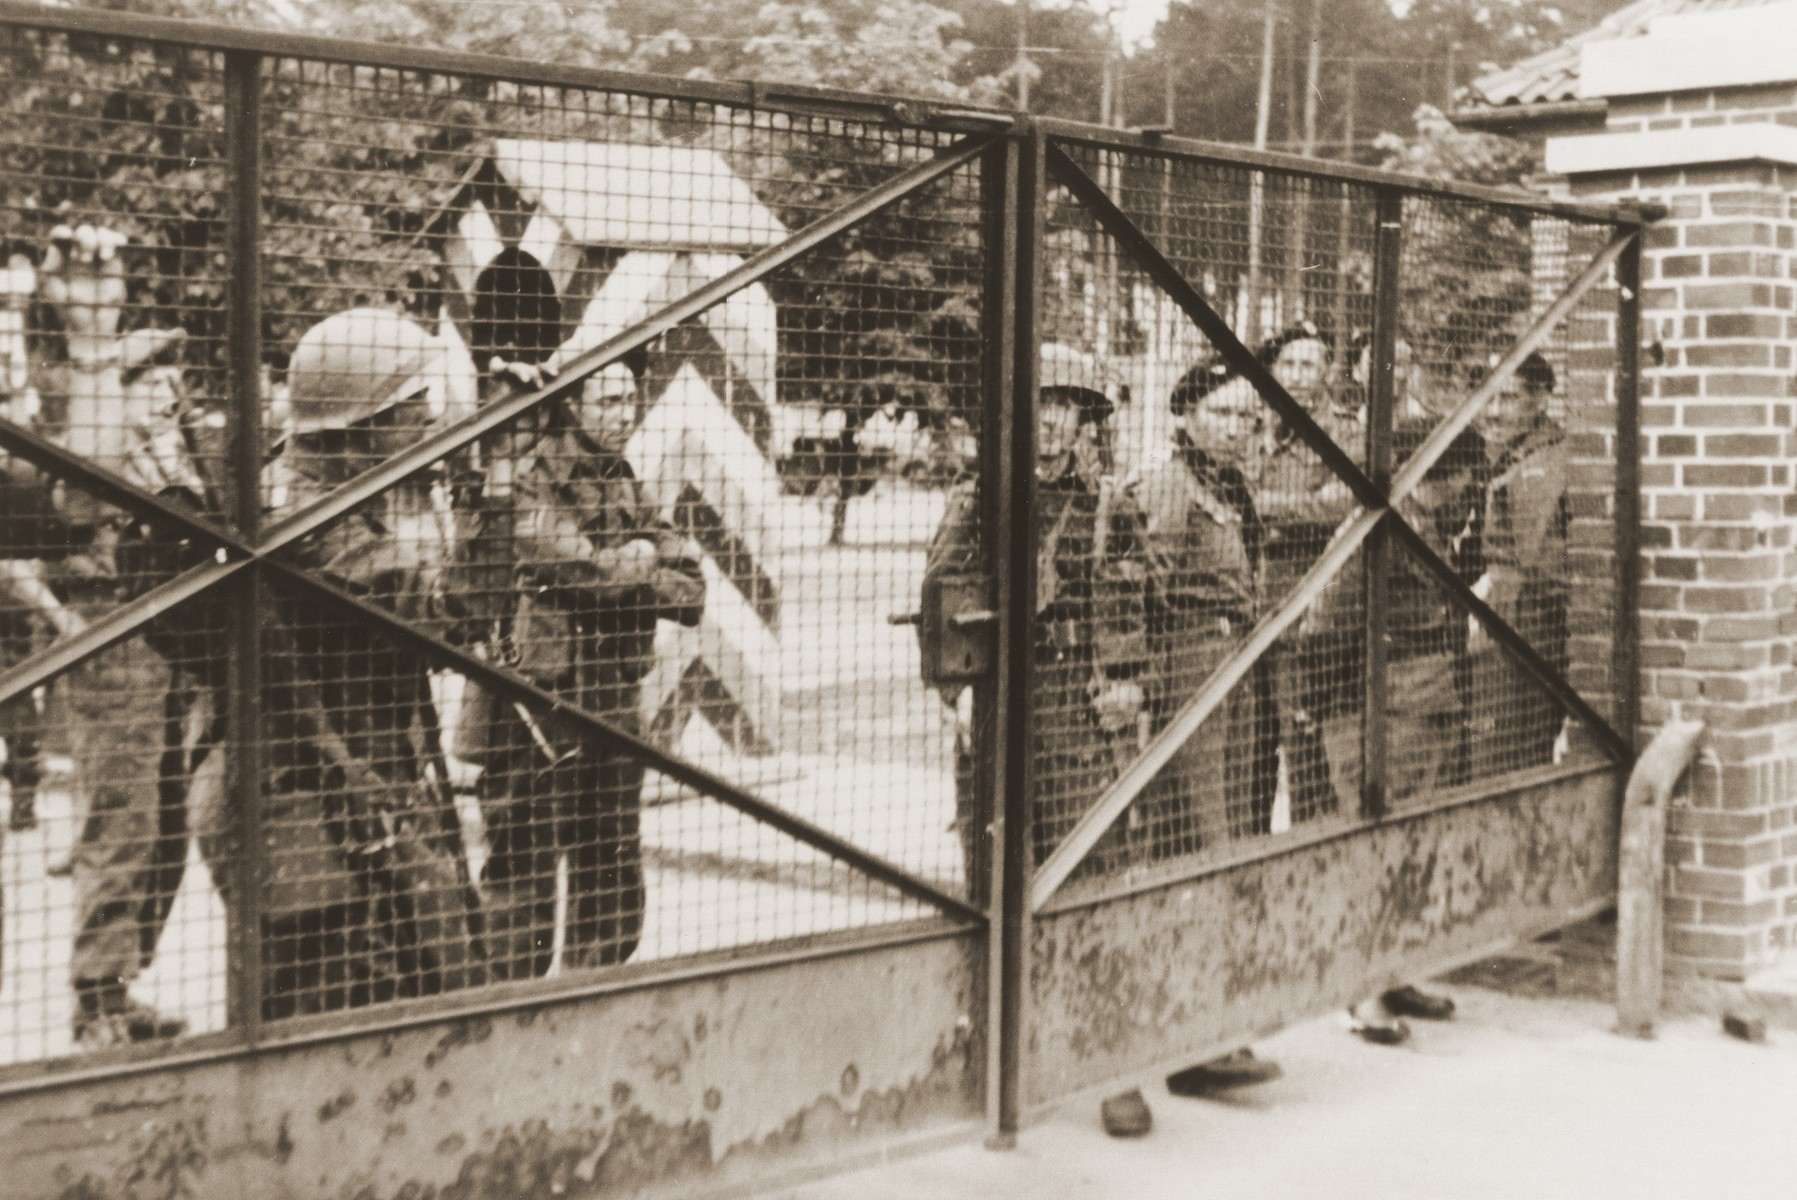 British soldiers stand guard outside the closed gates of the Bergen-Belsen displaced persons camp.